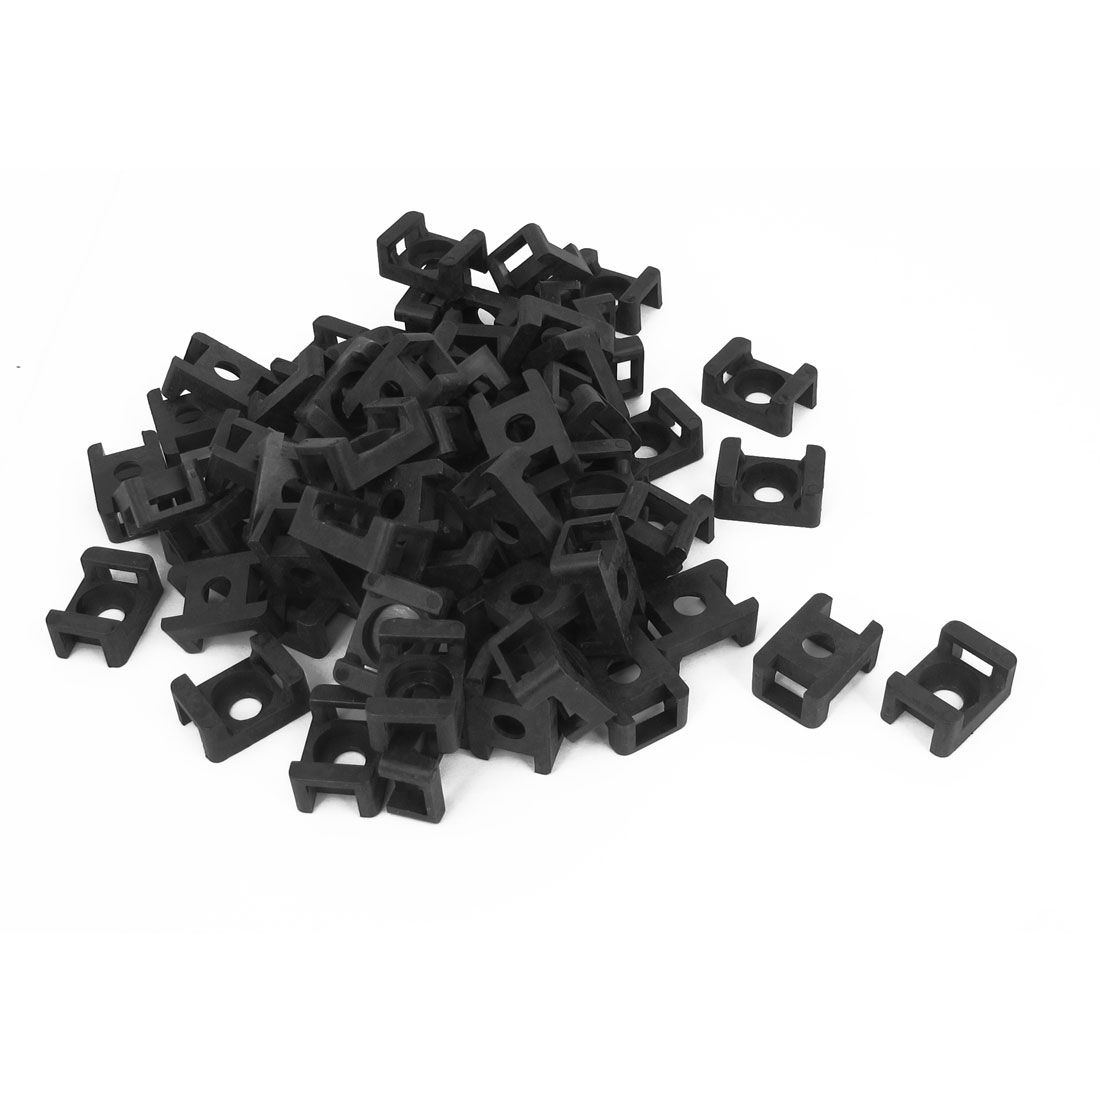 120 Pcs Plastic Wire Cable Tie Screw Fit Saddle Mountings 9mm Max Width